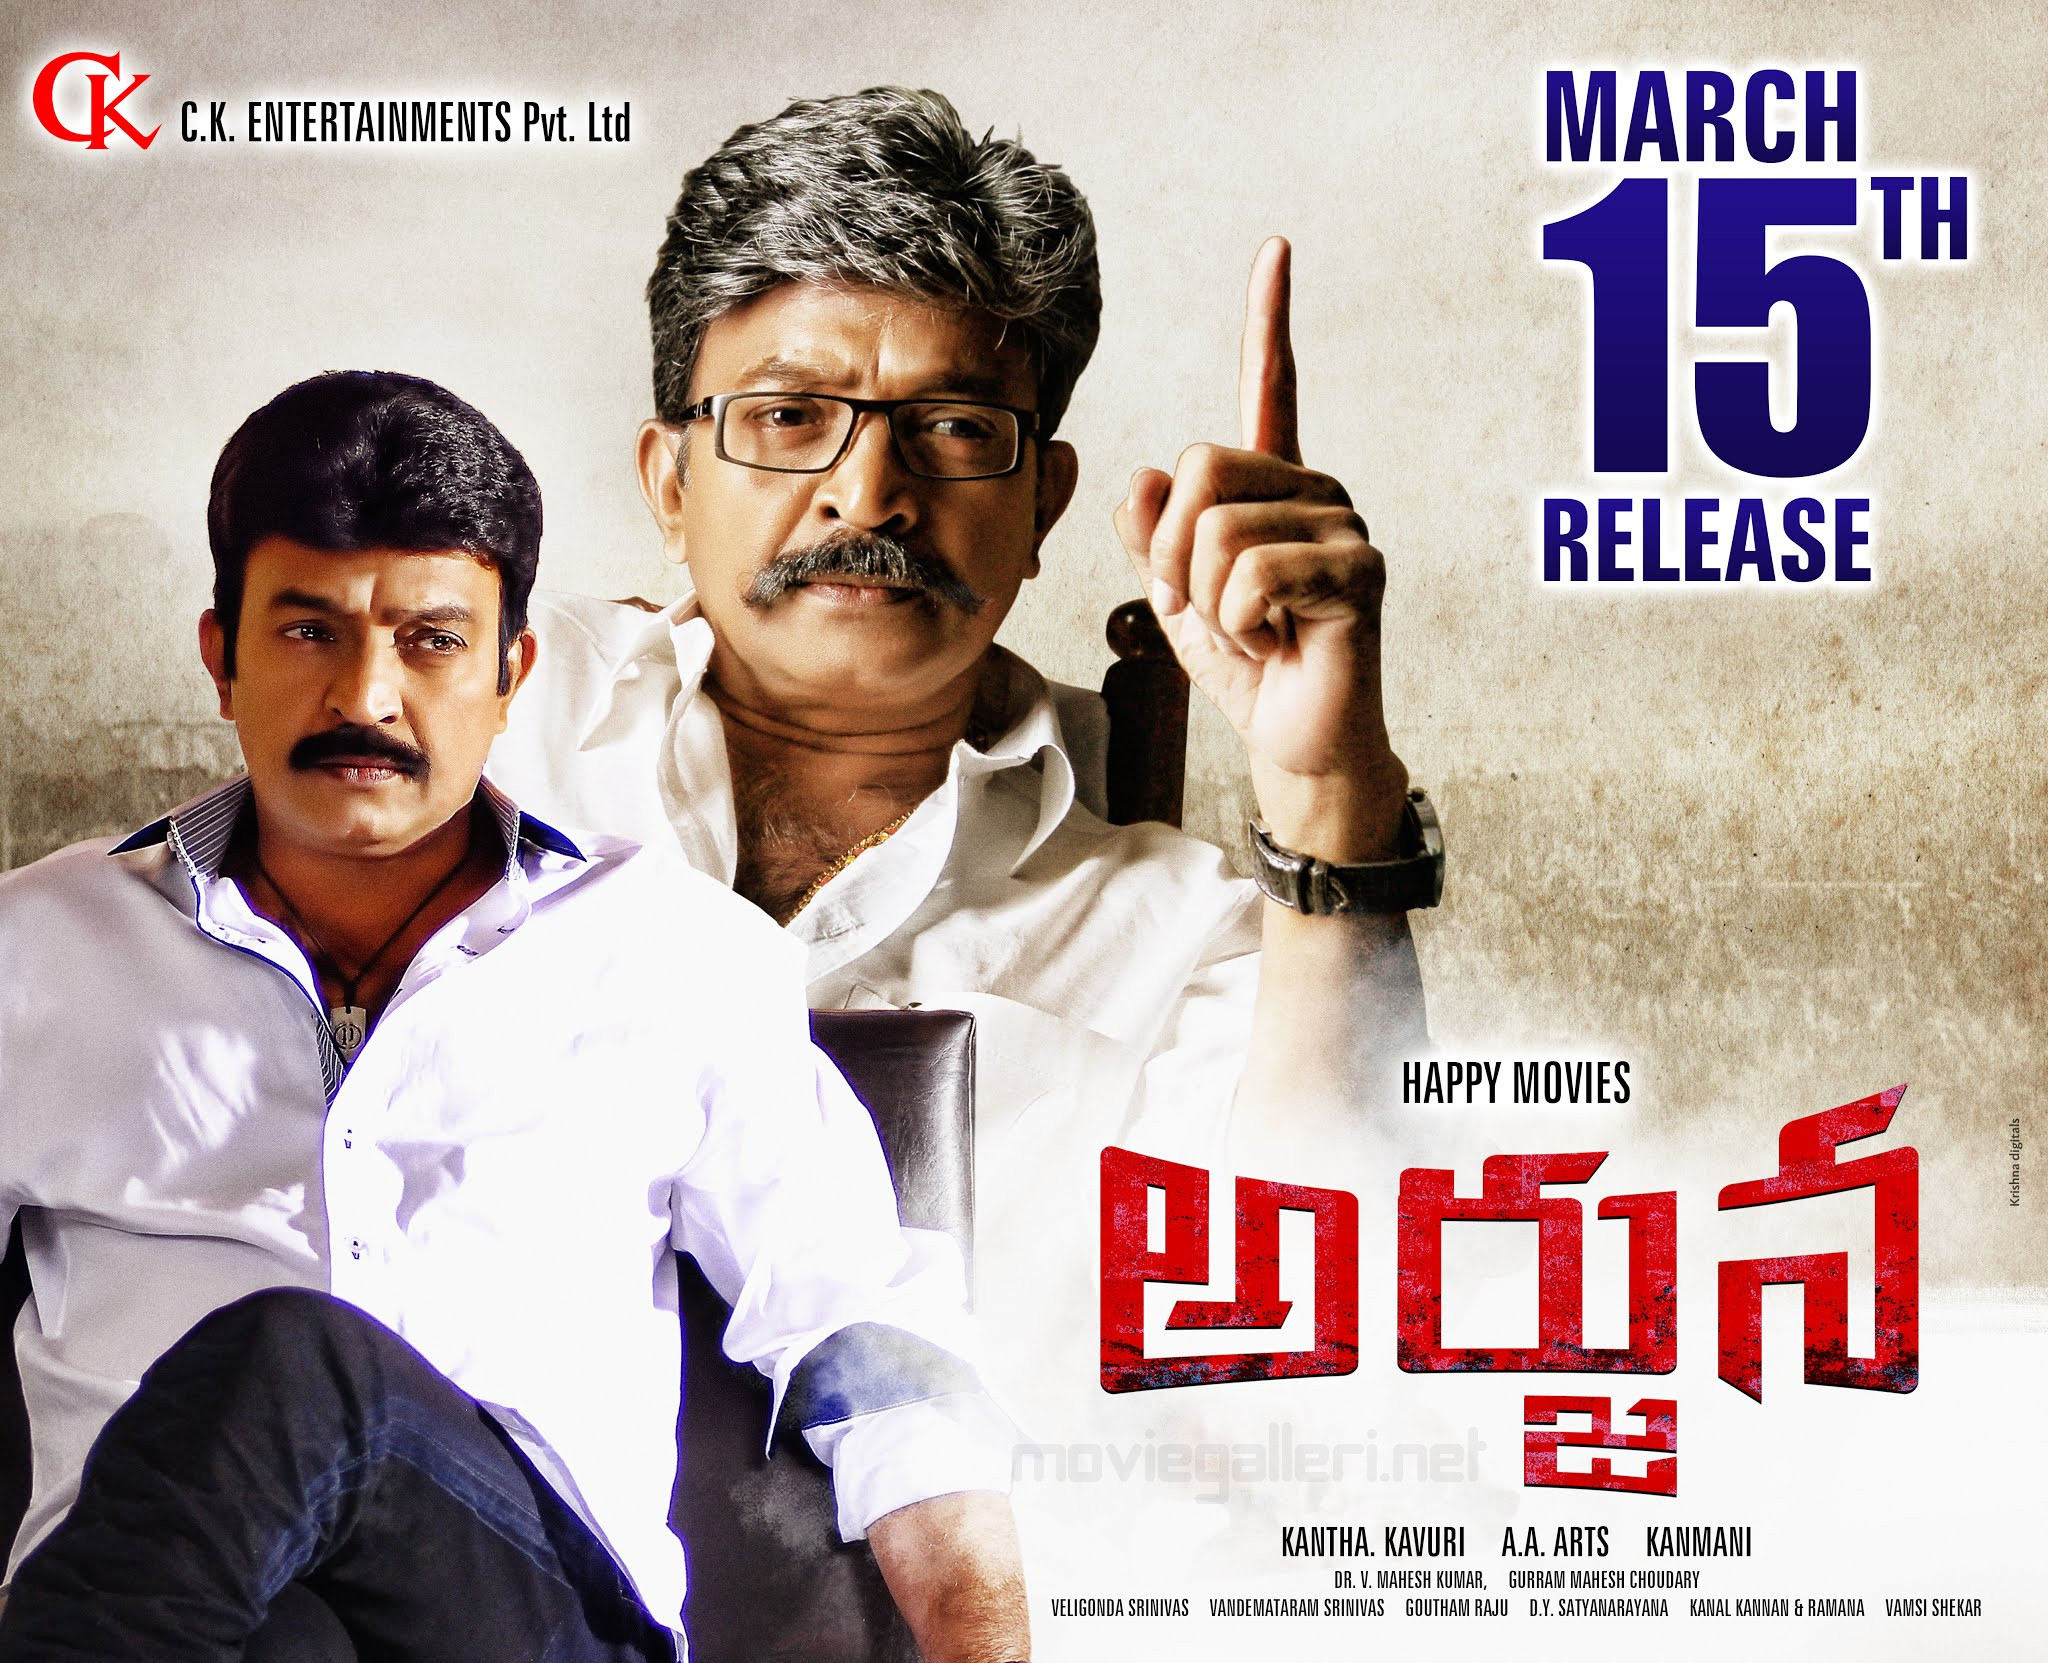 Rajasekhar's 'Arjuna' completes censor, release on March 15th